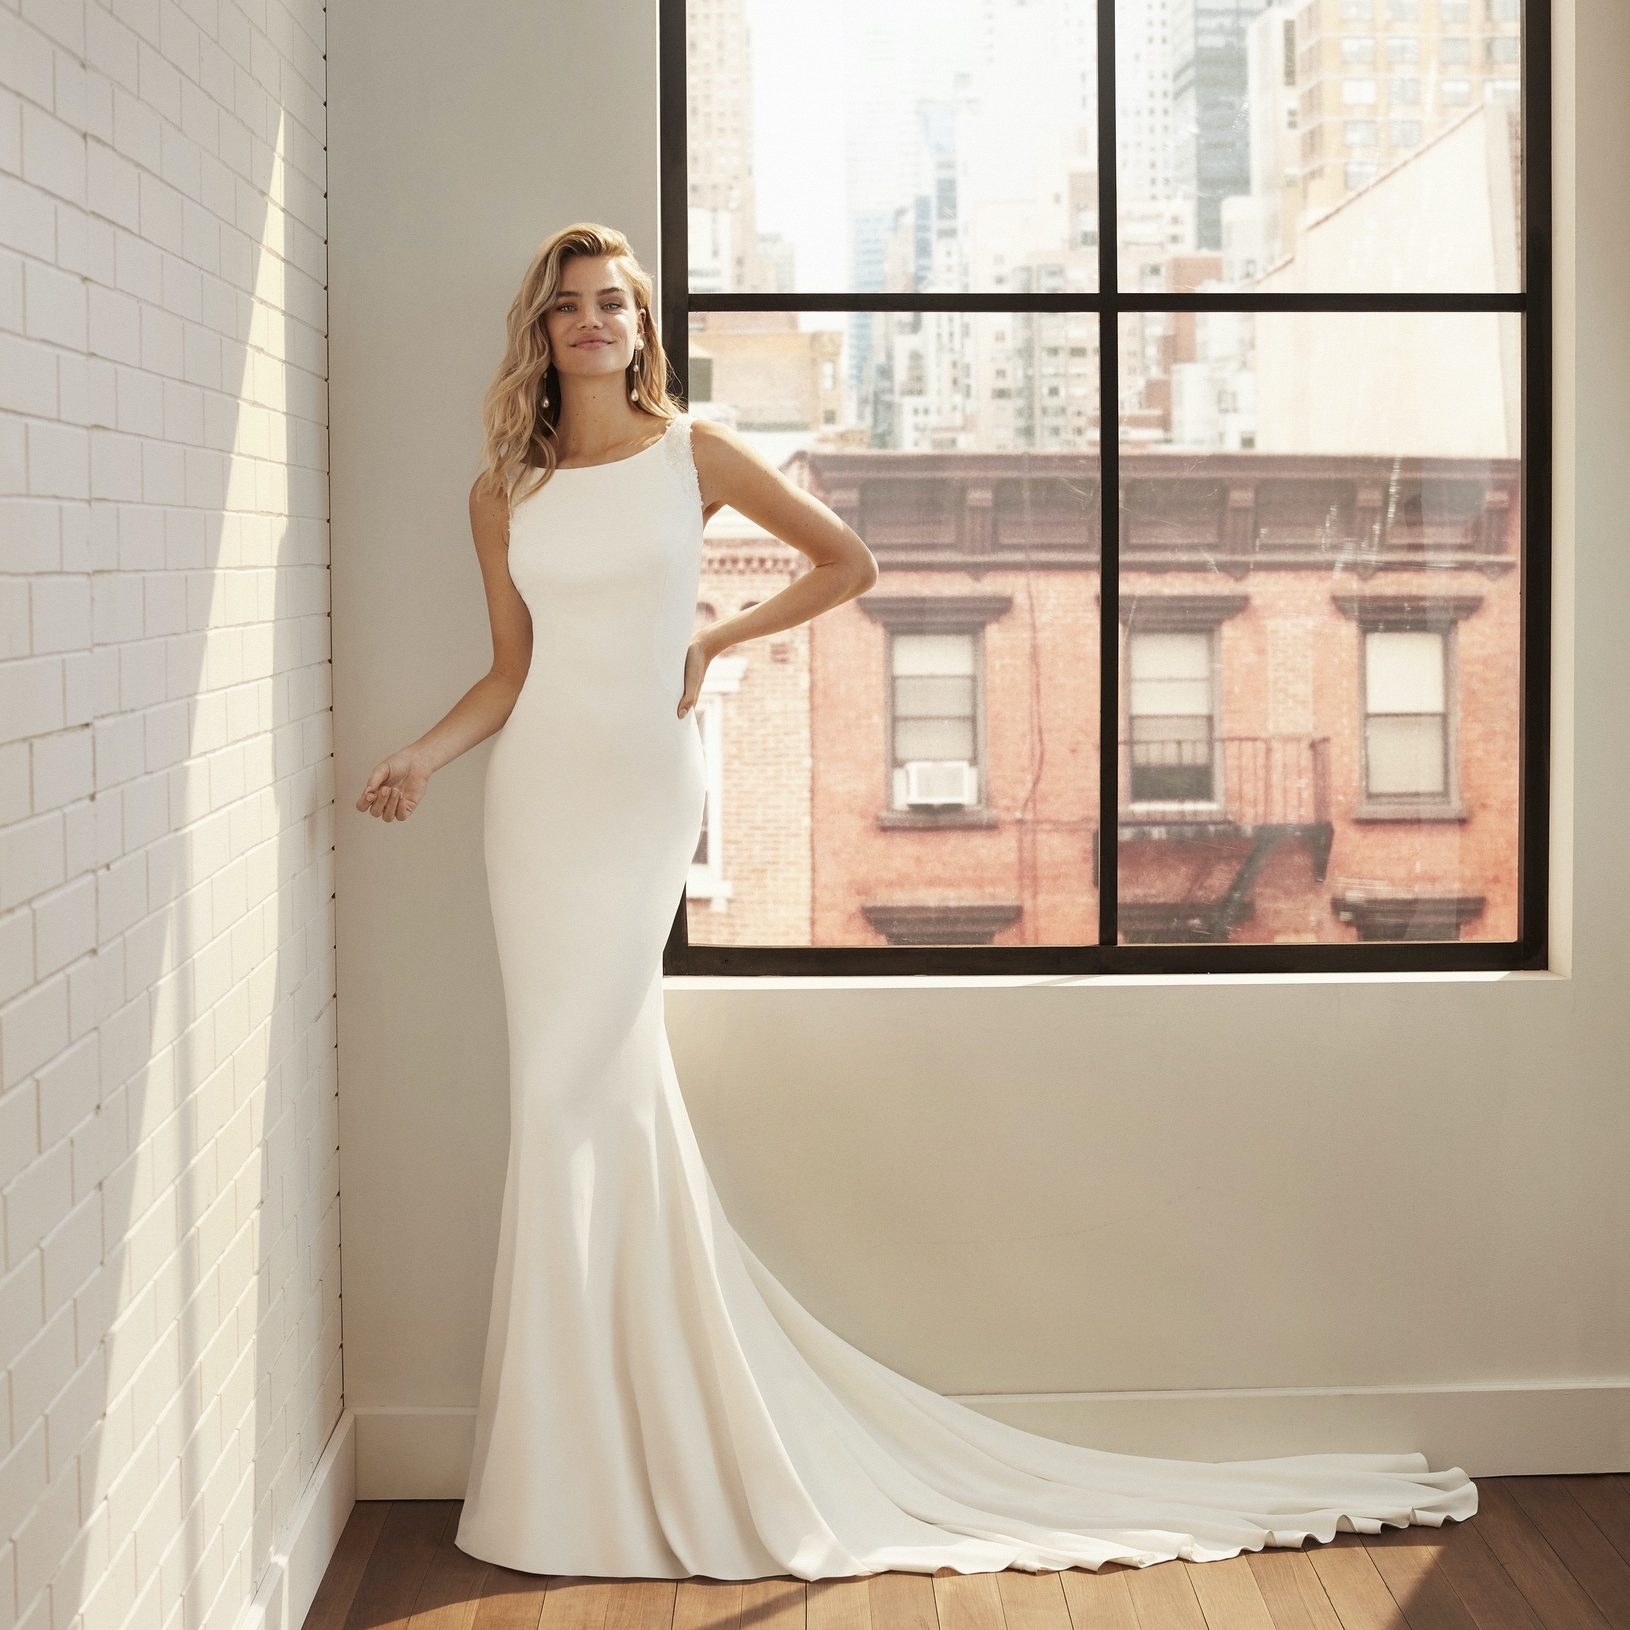 Bridal gown by Luna Novias at Perfect Day Bridal